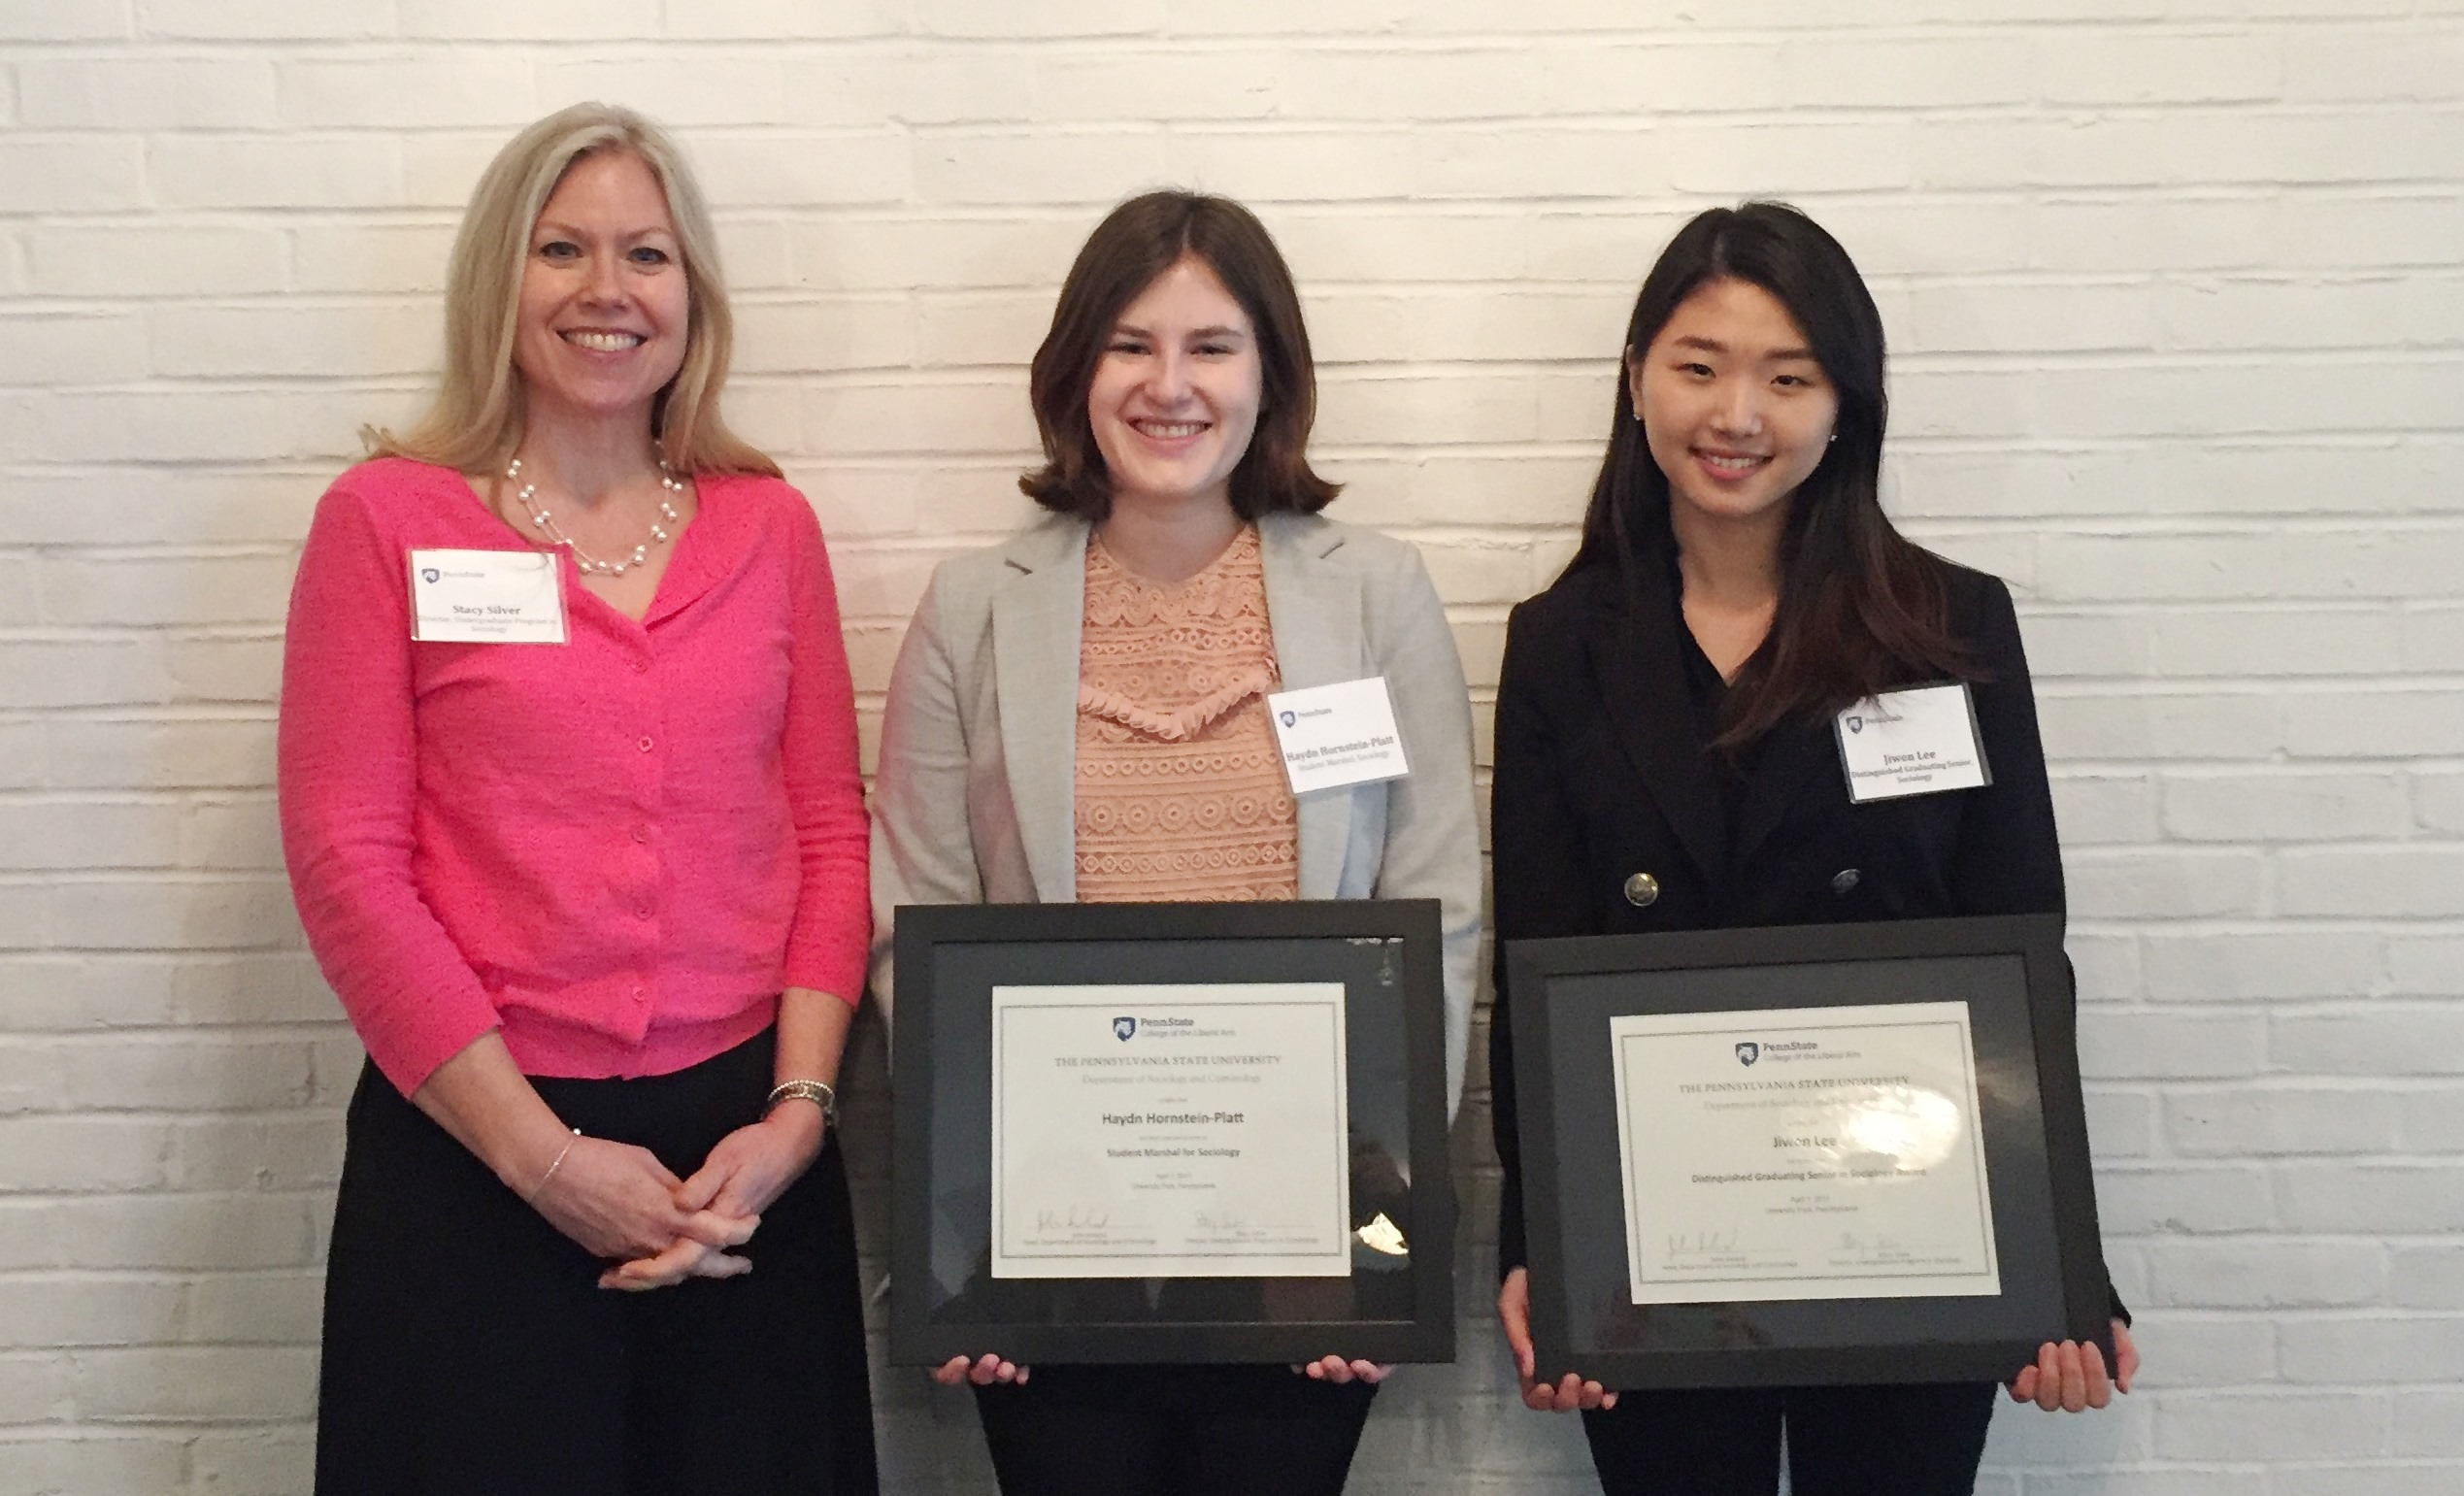 Alumni and Students Honored at 2017 Sociology and Criminology Award Ceremony